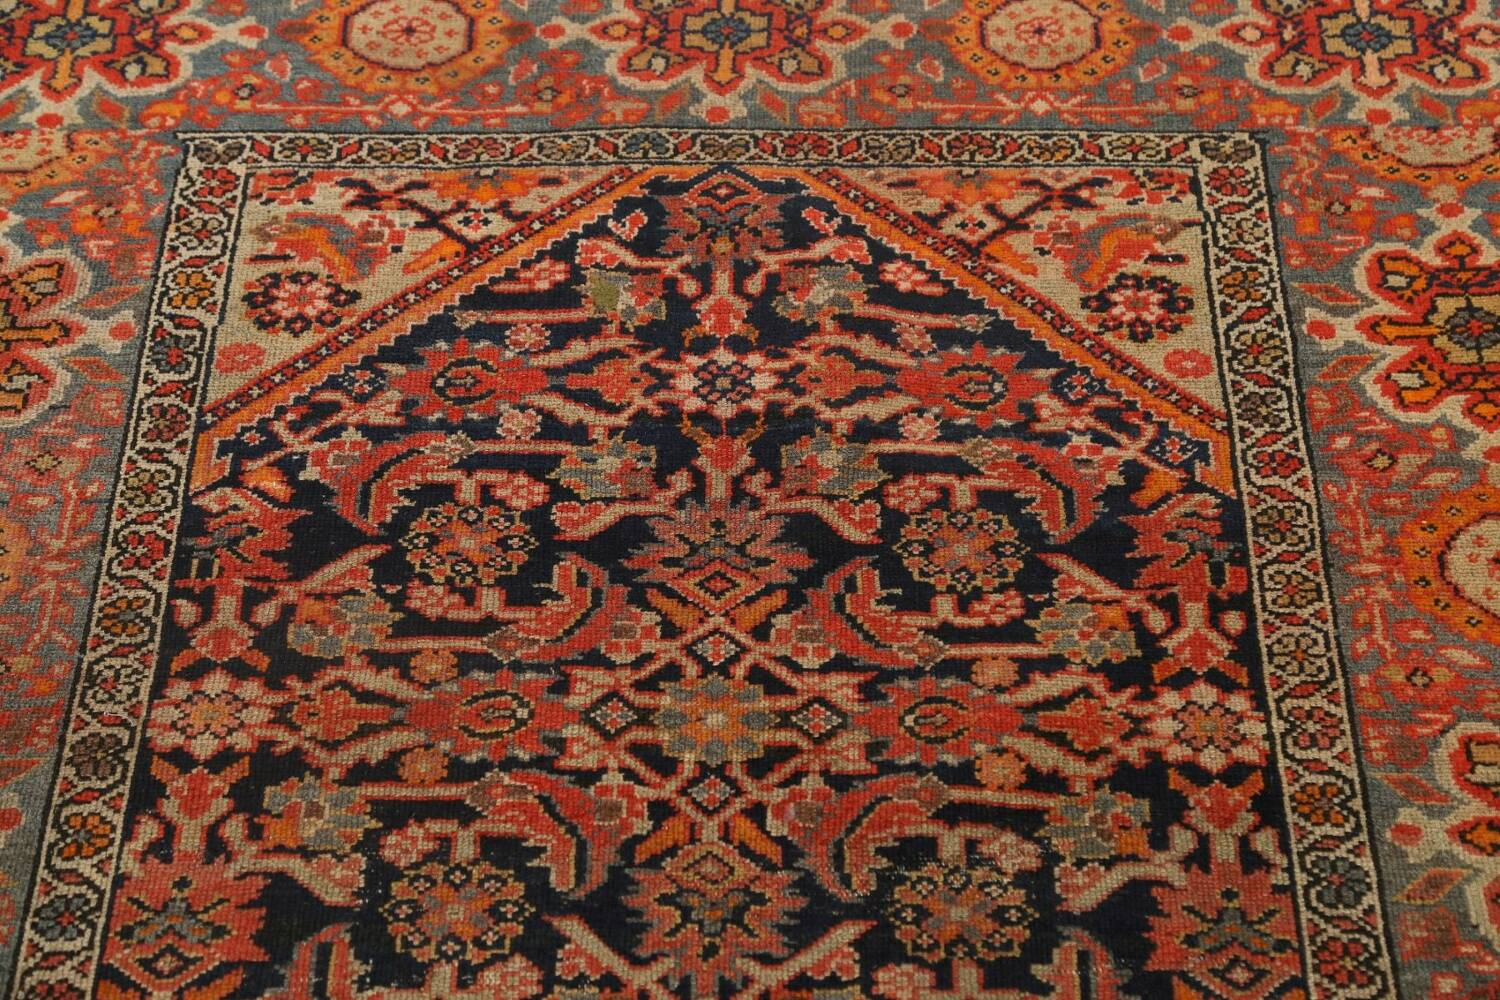 Pre-1900 Antique Vegetable Dye Malayer Persian Area Rug 4x6 image 12